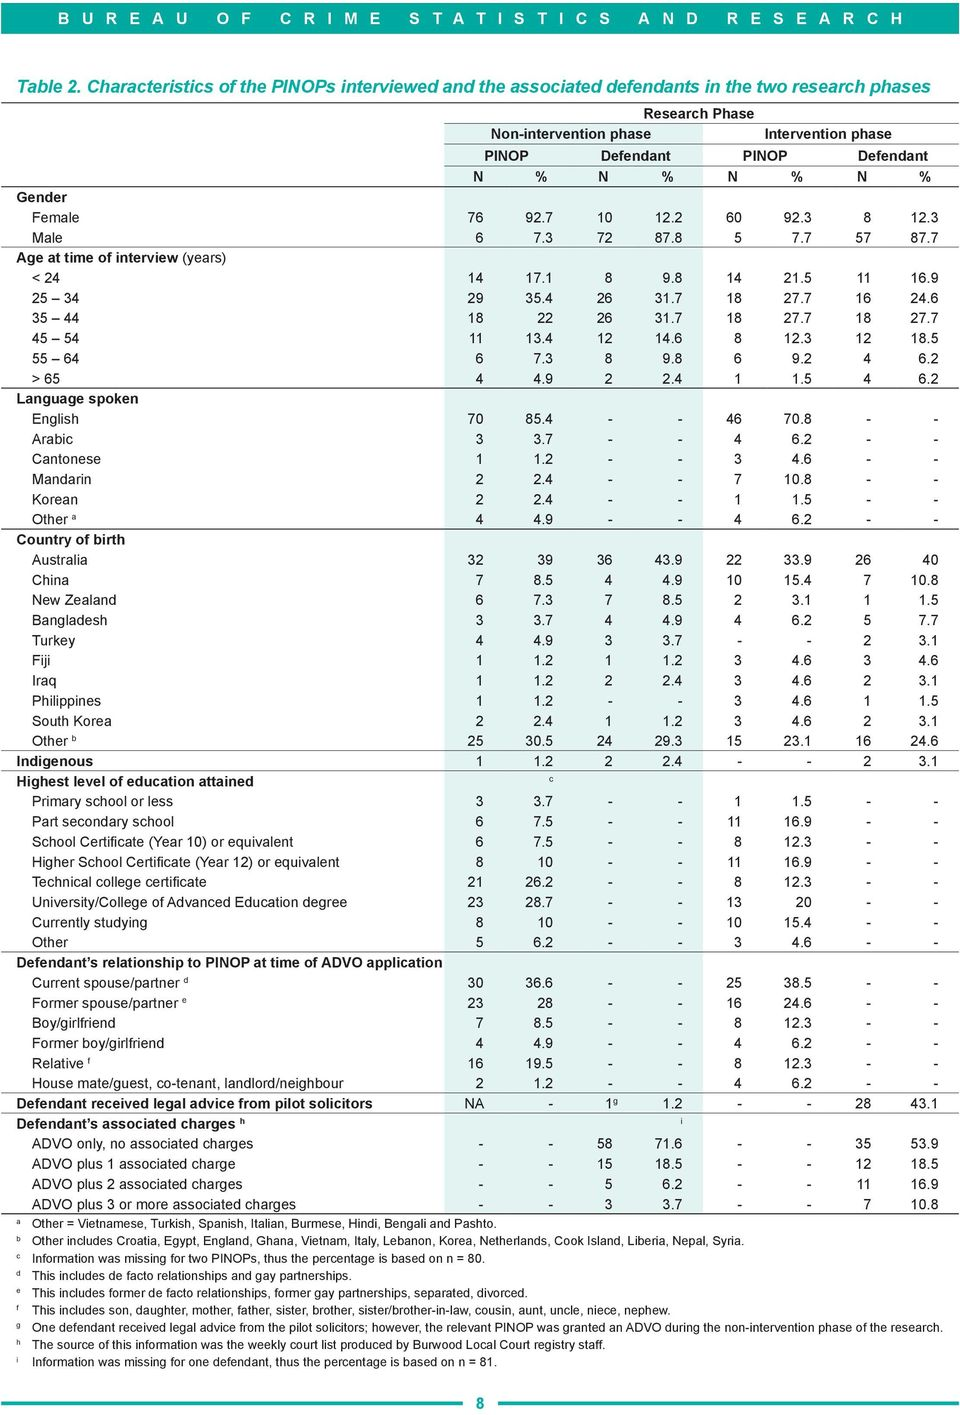 N % Gender Female 76 92.7 10 12.2 60 92.3 8 12.3 Male 6 7.3 72 87.8 5 7.7 57 87.7 Age at time of interview (years) < 24 14 17.1 8 9.8 14 21.5 11 16.9 25 34 29 35.4 26 31.7 18 27.7 16 24.